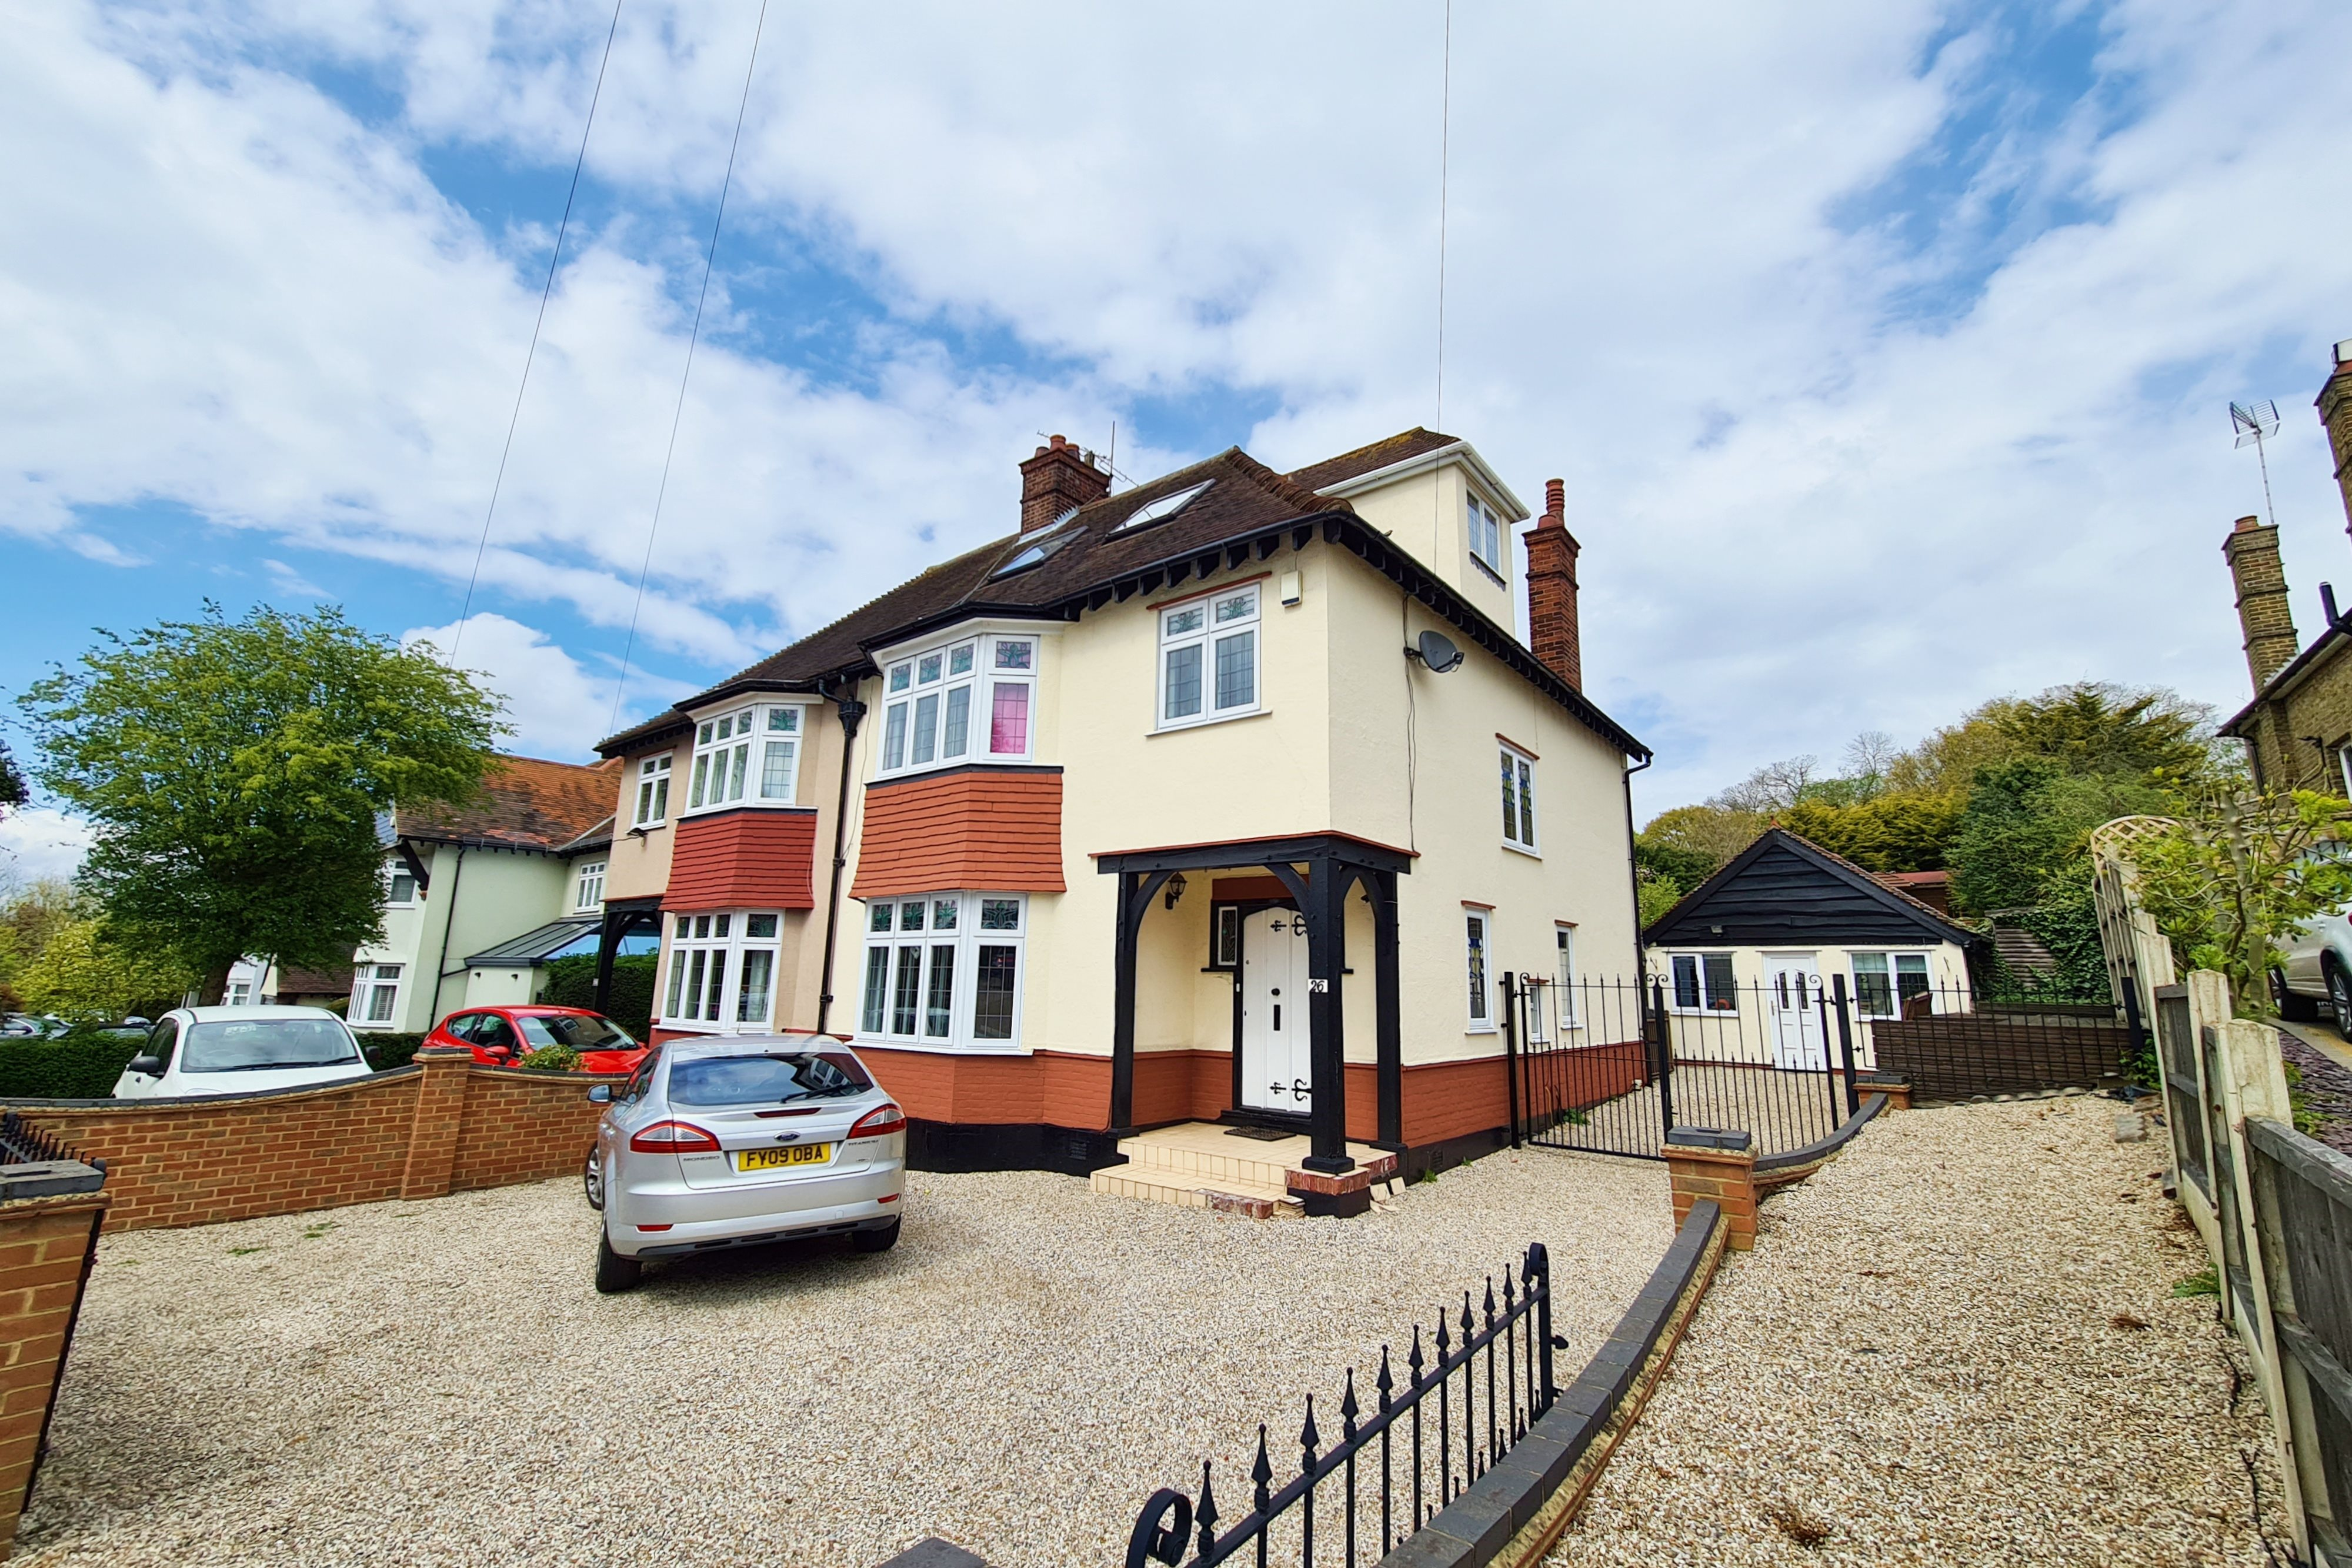 4 bed house for sale in Crown Hill, Rayleigh - Property Image 1